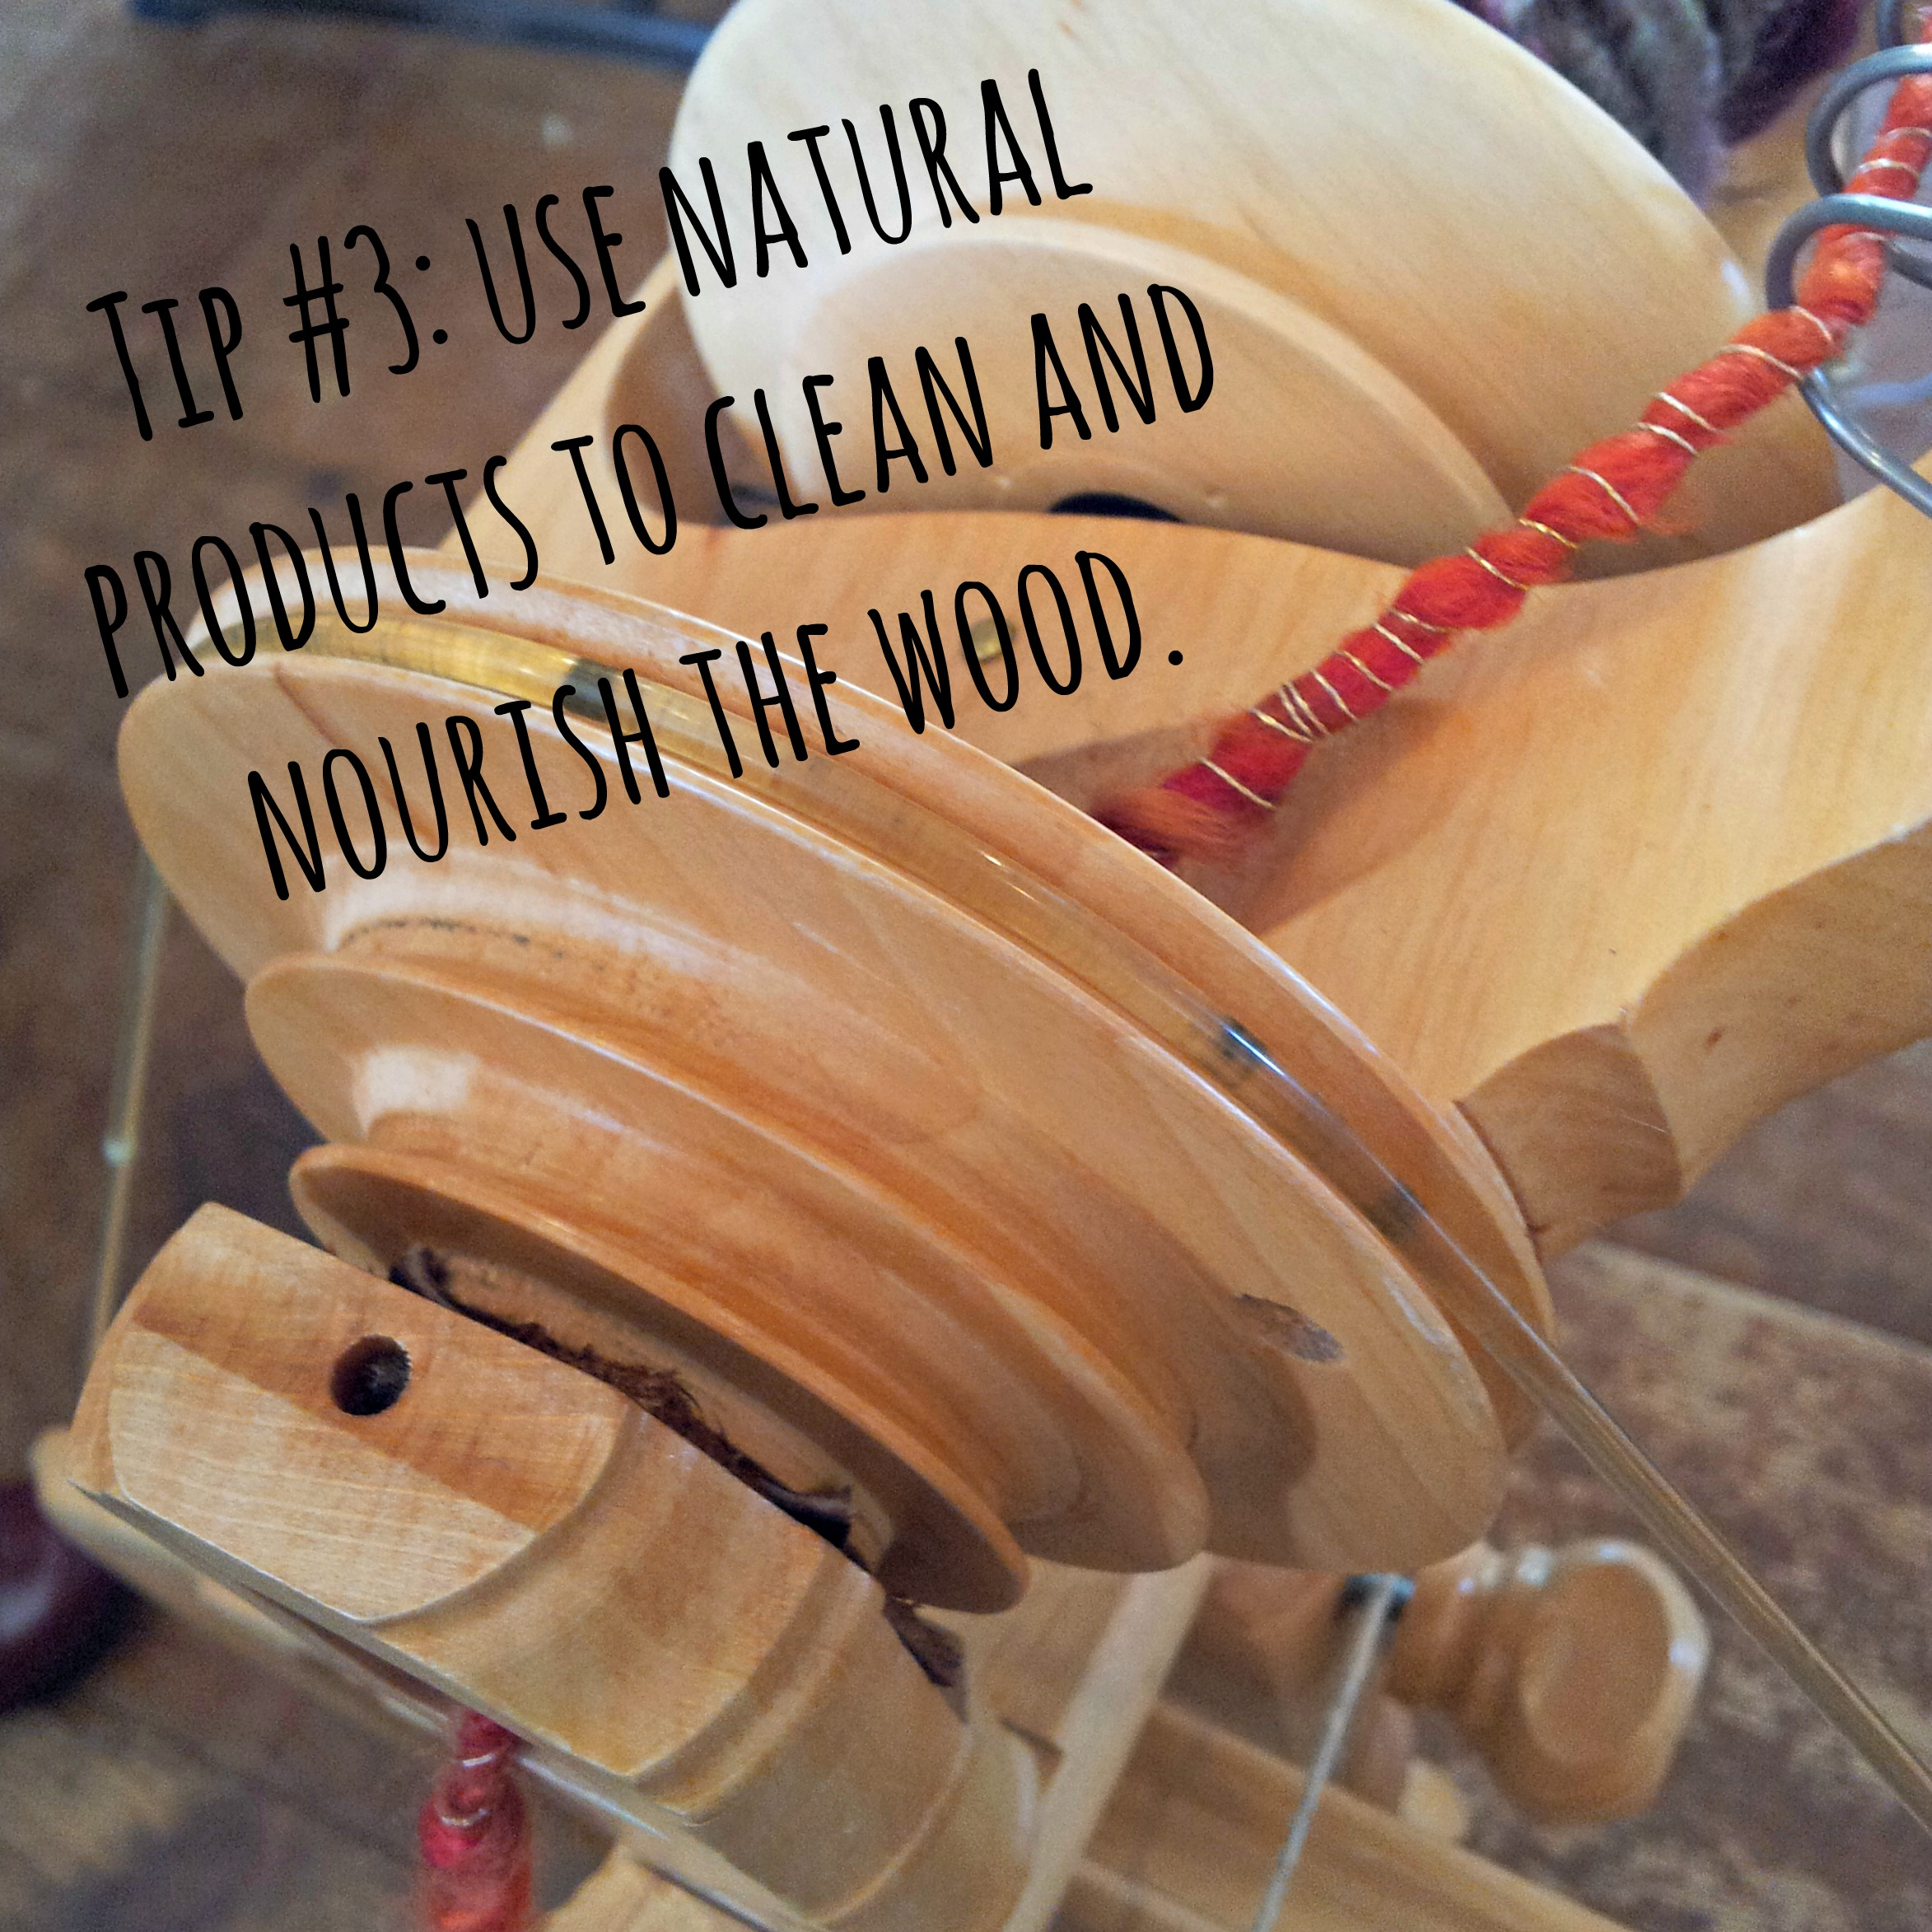 Use Natural Products to Clean and Nourish the Wood